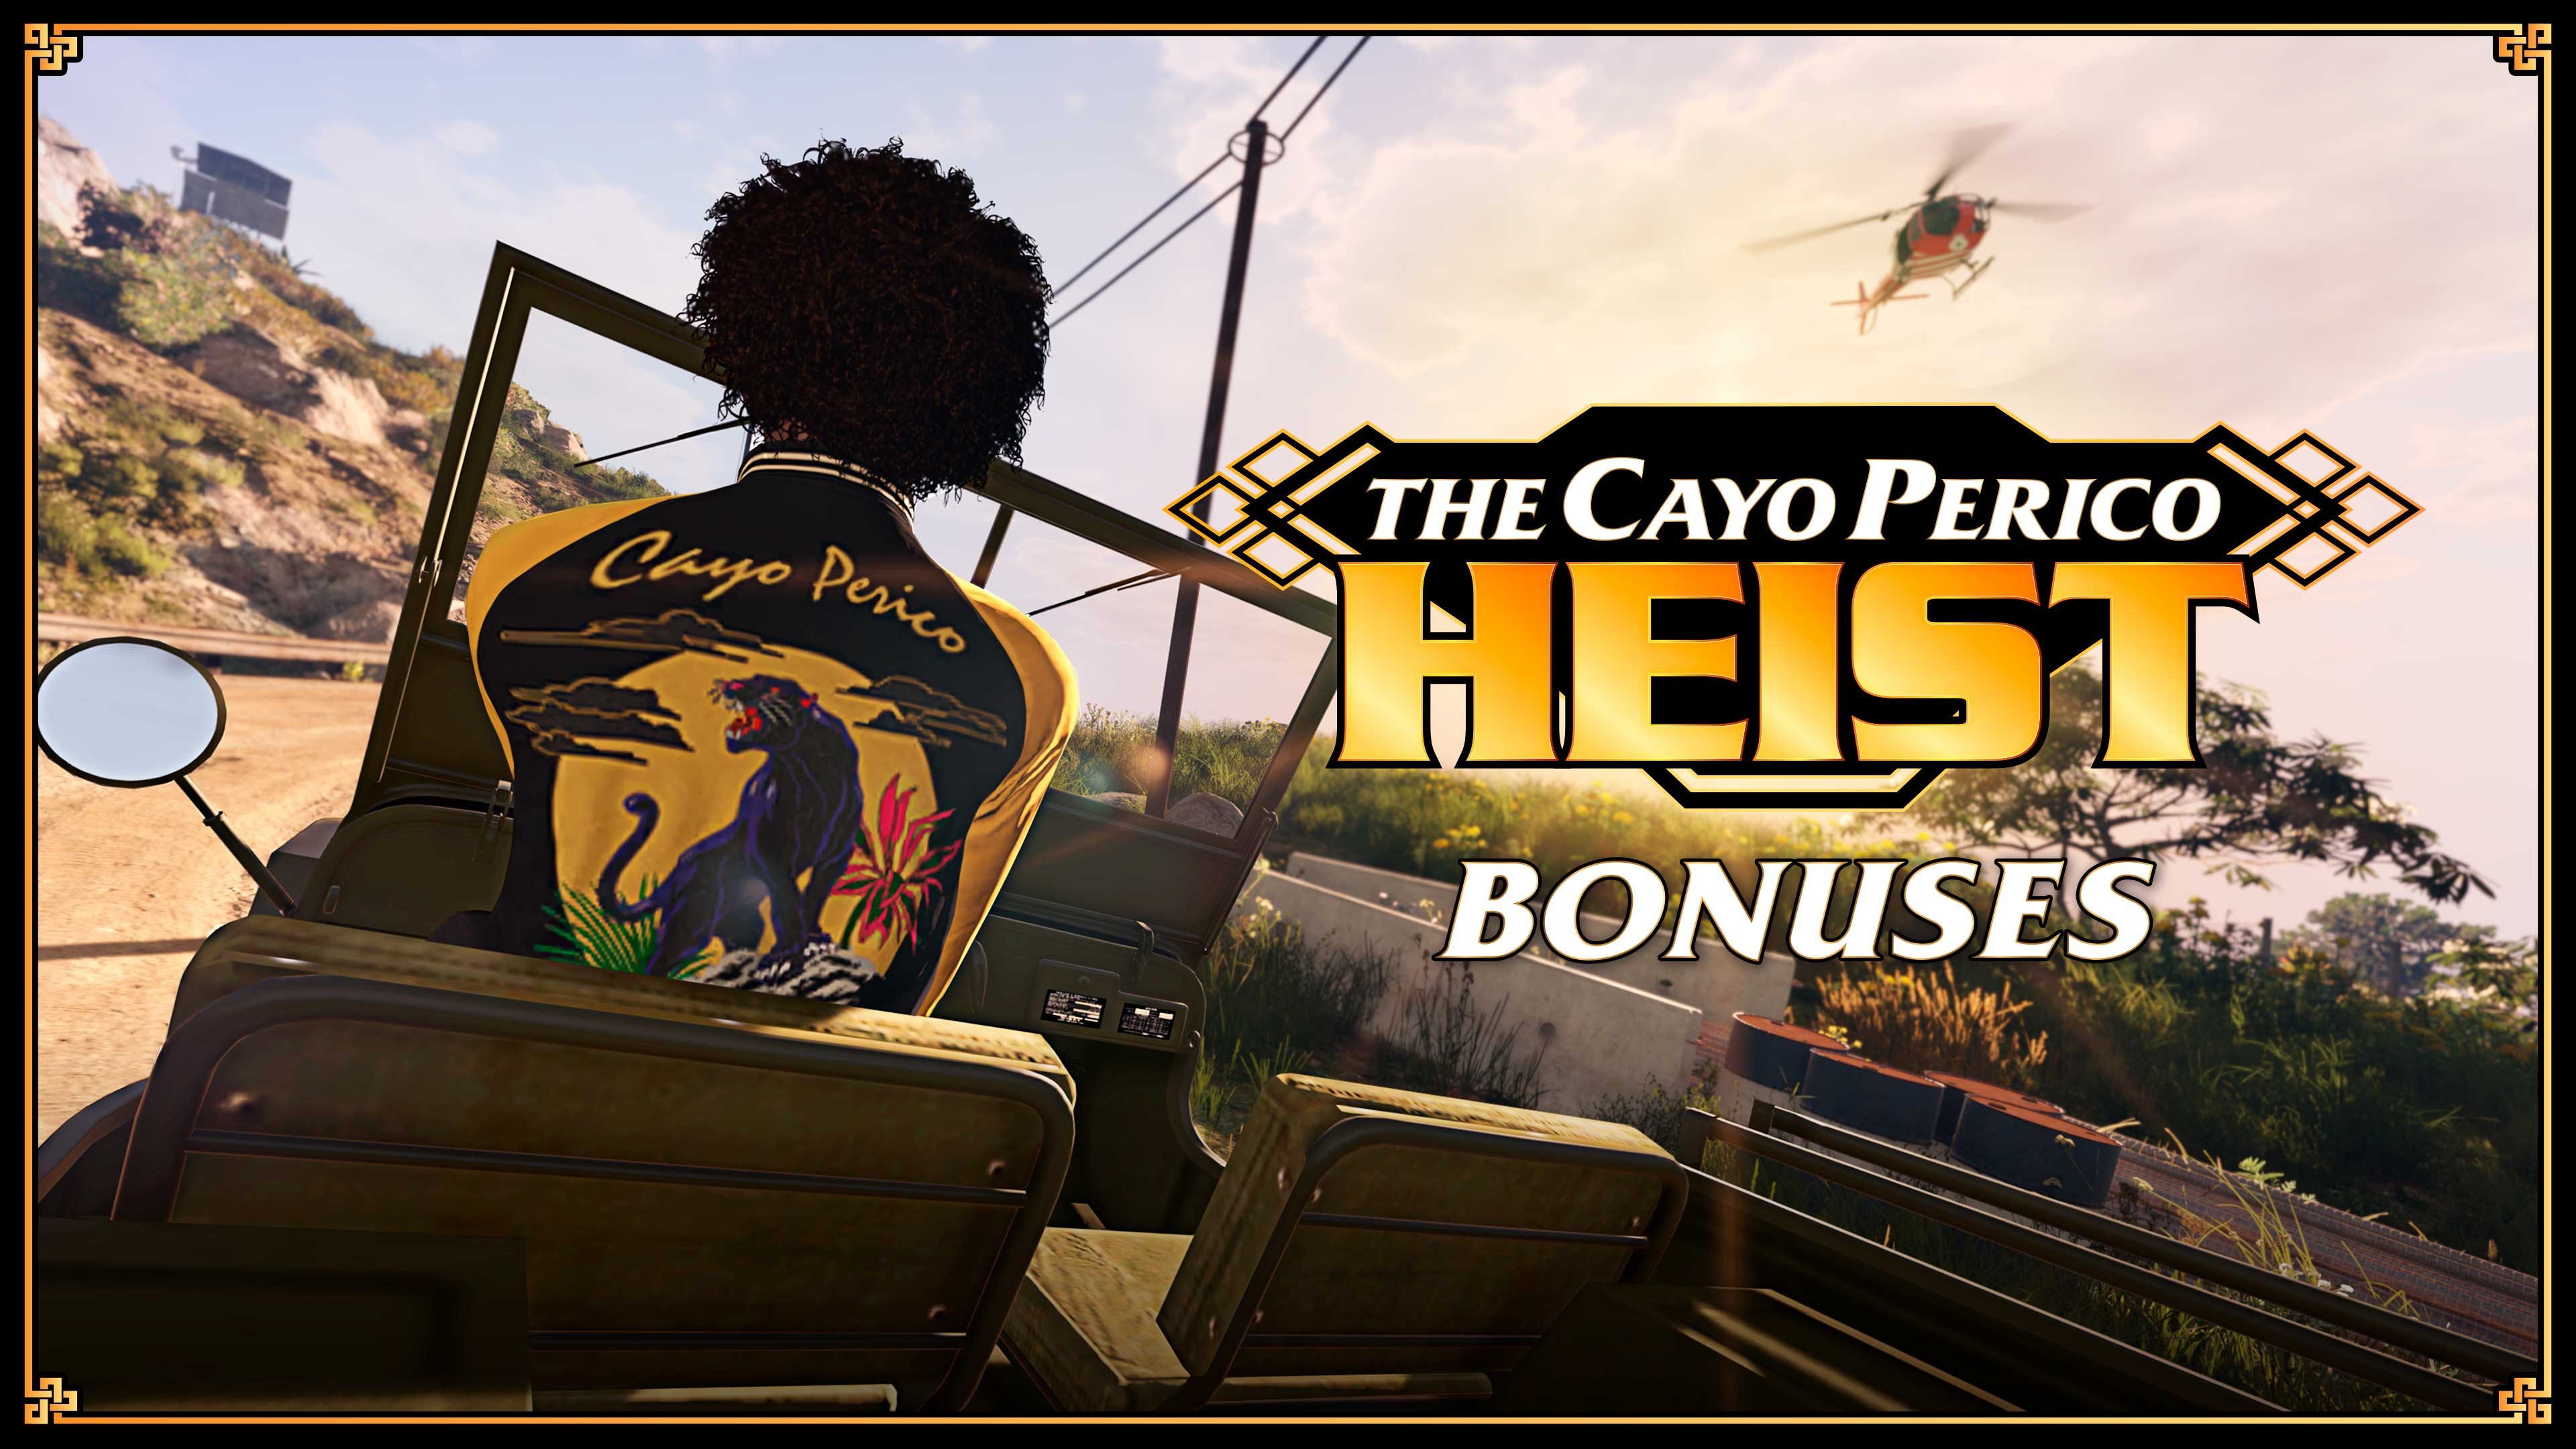 GTA Online: The Cayo Perico Heist Bonuses, Heist Challenge Rewards, Unlocks & more